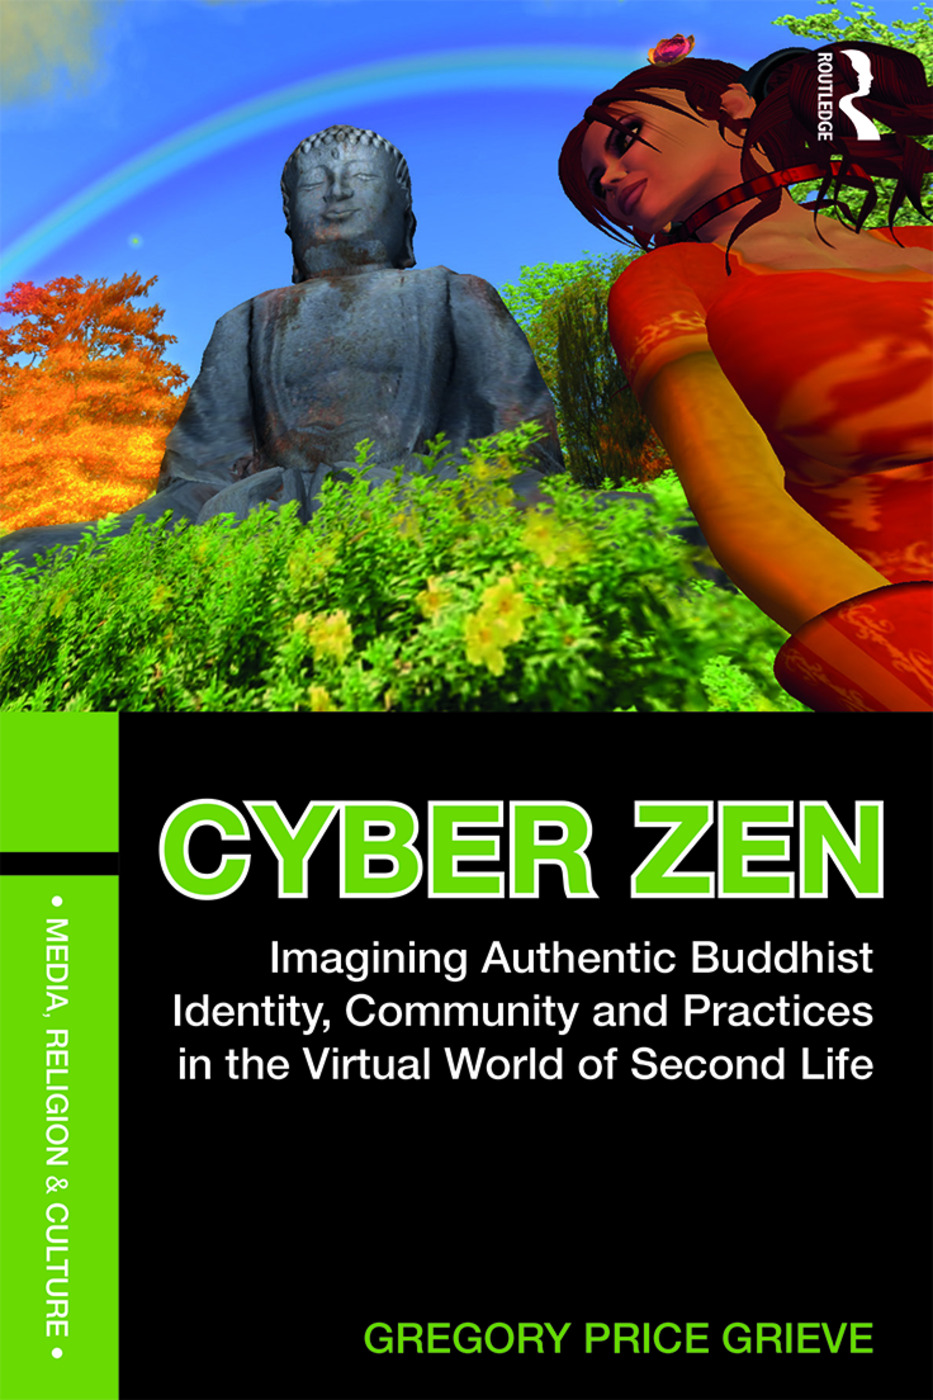 Cyber Zen: Imagining Authentic Buddhist Identity, Community, and Practices in the Virtual World of Second Life book cover